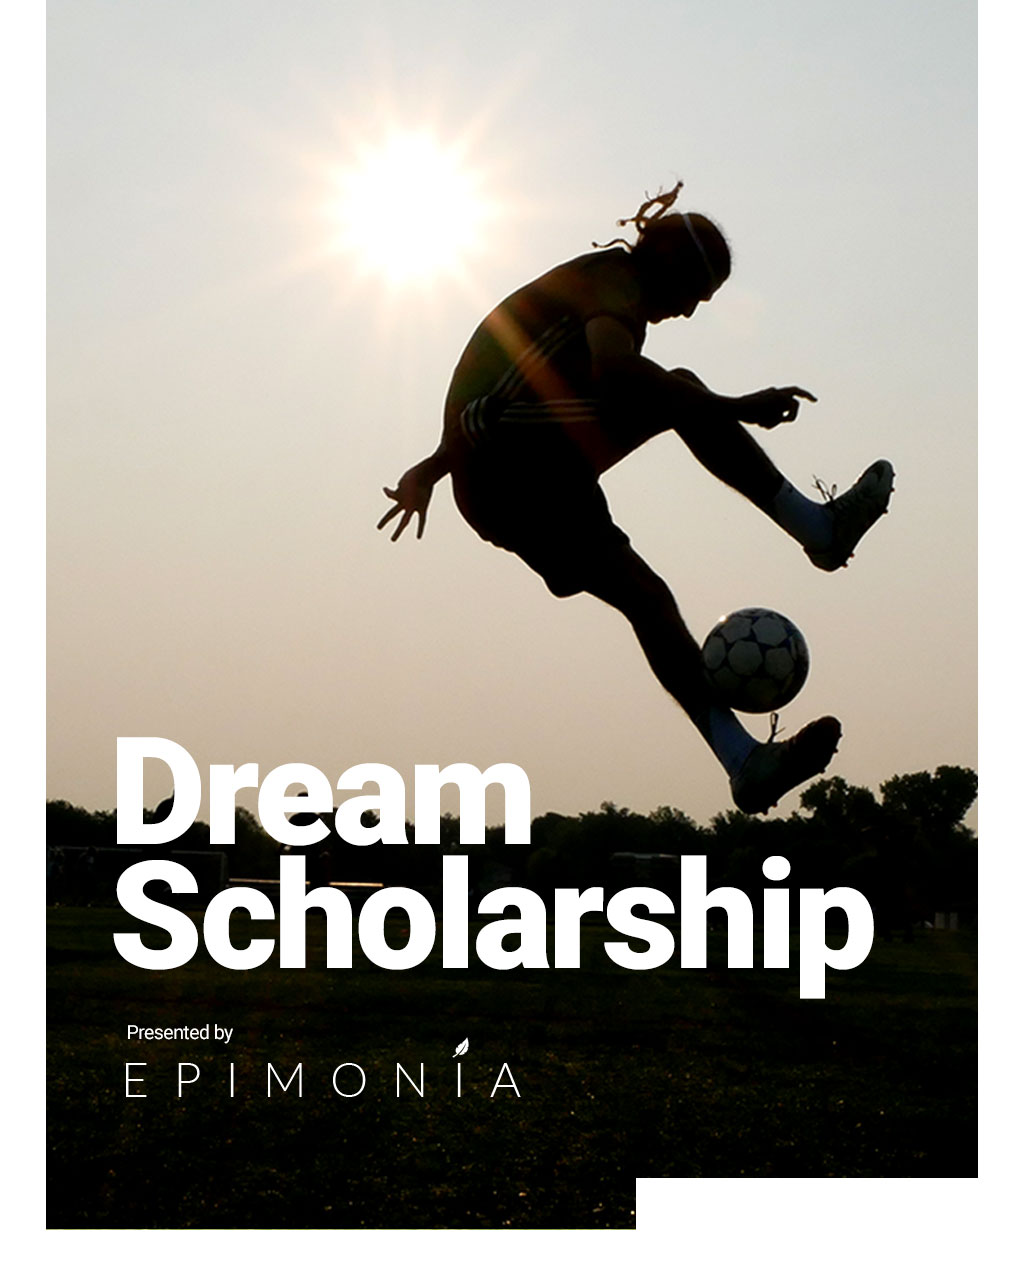 karen-national-team-full-image-header-mobile-epimonia-dream-scholarship